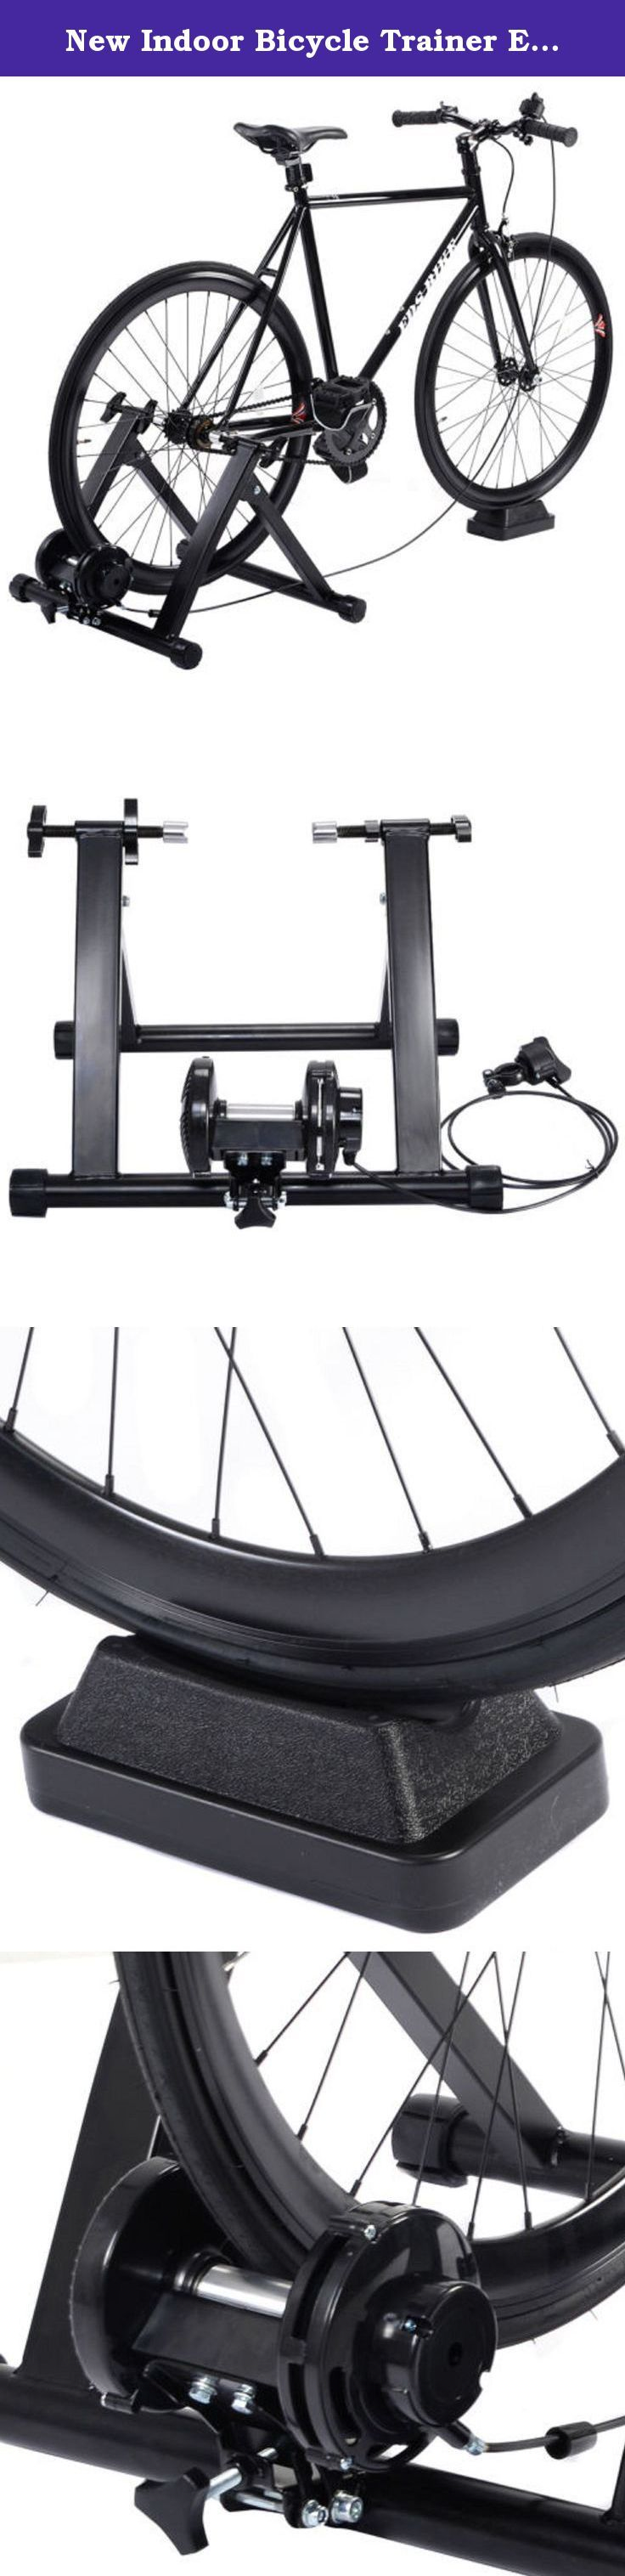 New Indoor Bicycle Trainer Exercise Bike Machine Ride Stand W/ 5 Levels Resistance Stationary. Product Description This Bicycle Trainer Is Specially Designed For Indoor Workout And Training. It Just Takes A Minute To Set It Up, Clamp Your Rear Axle With The Quick Clamp And Adjust The Contact Between The Wheel And The Polished Roller. With Its Fluid Drive Resistance System And Fluid Cooling Flywheel You Can Do Whatever You Want To Do. There Is No Reason Why You Can Not Exercise With Your…